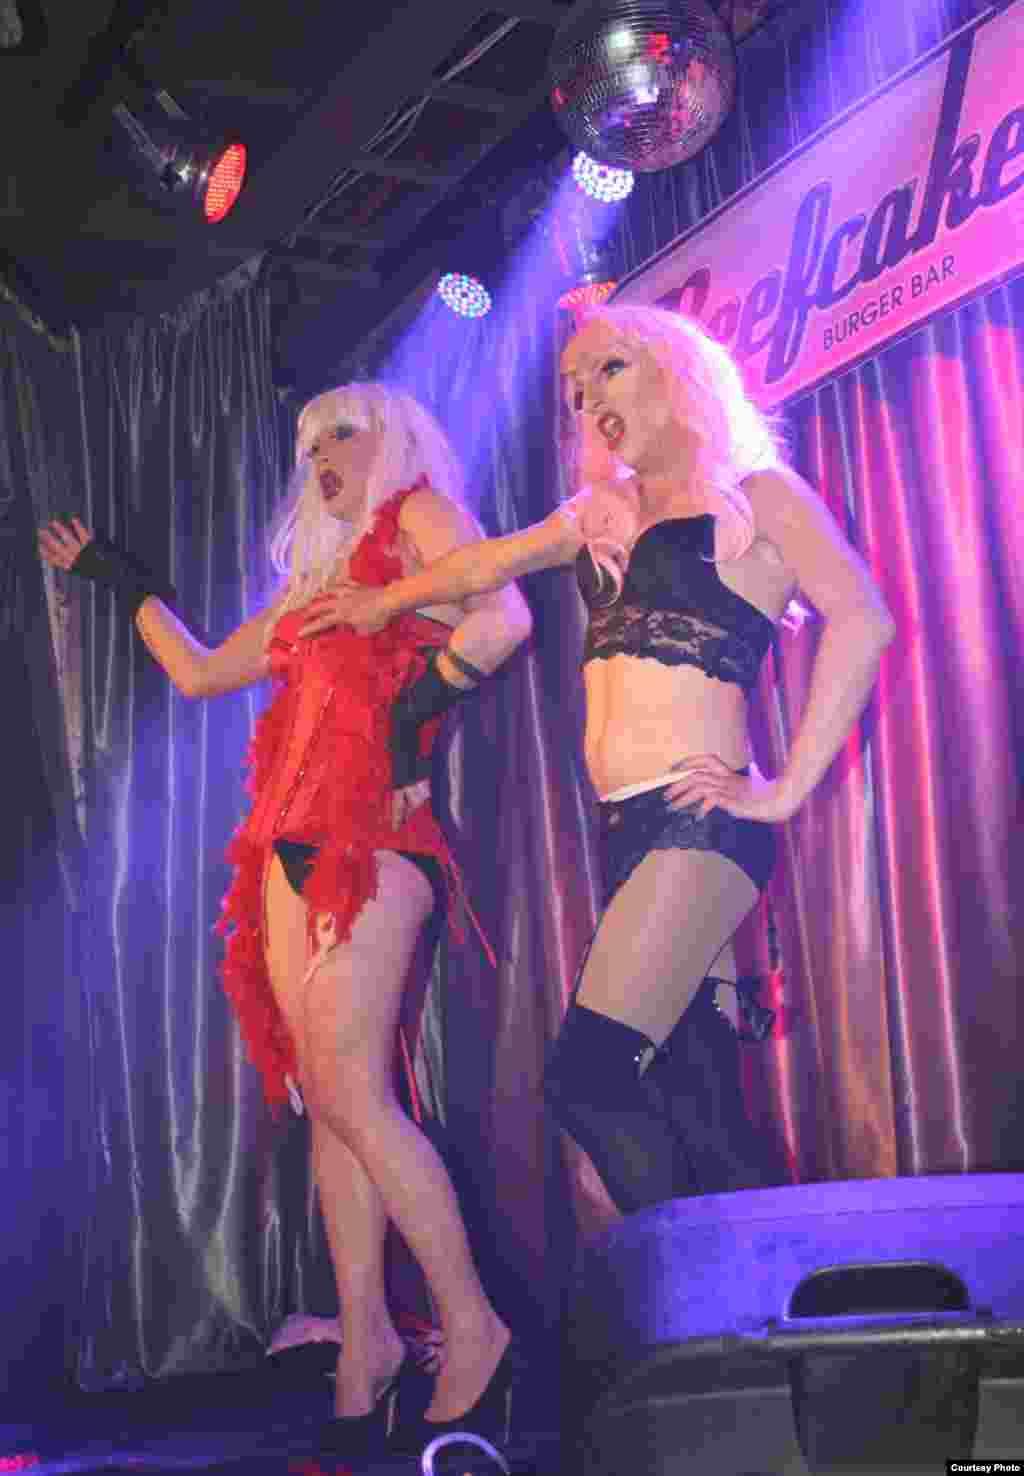 A new clientele of heterosexual women come to see Alley Hoop and Cadenza (Alain Fleischman) perform in a club the manager says used to be the center of the city's gay universe. (Photo by Darren Taylor)